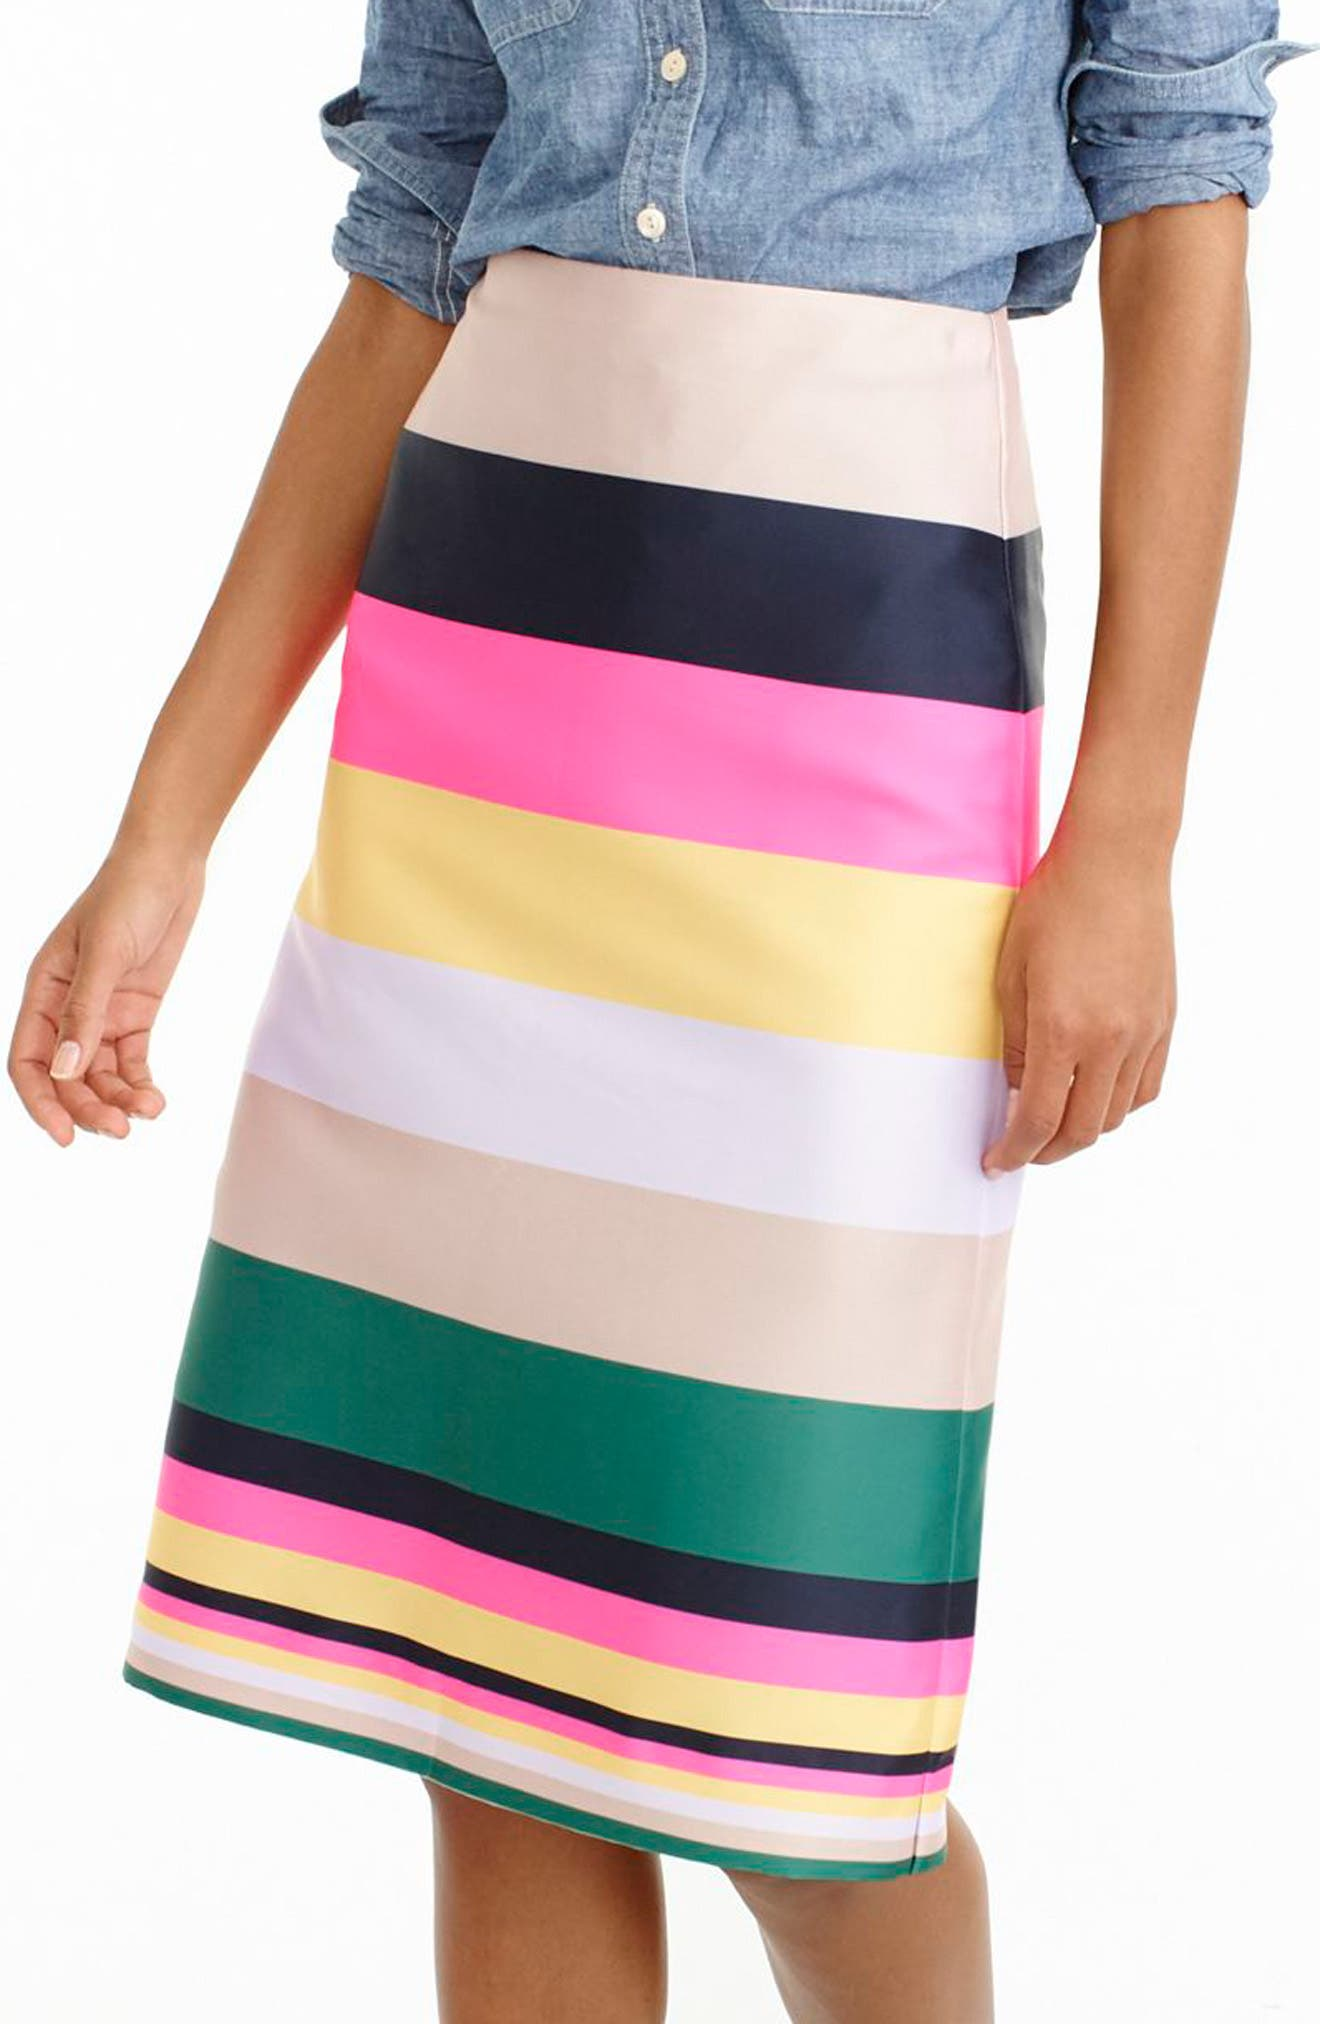 Alternate Image 1 Selected - J.Crew Pop Stripe Skirt (Regular & Petite)